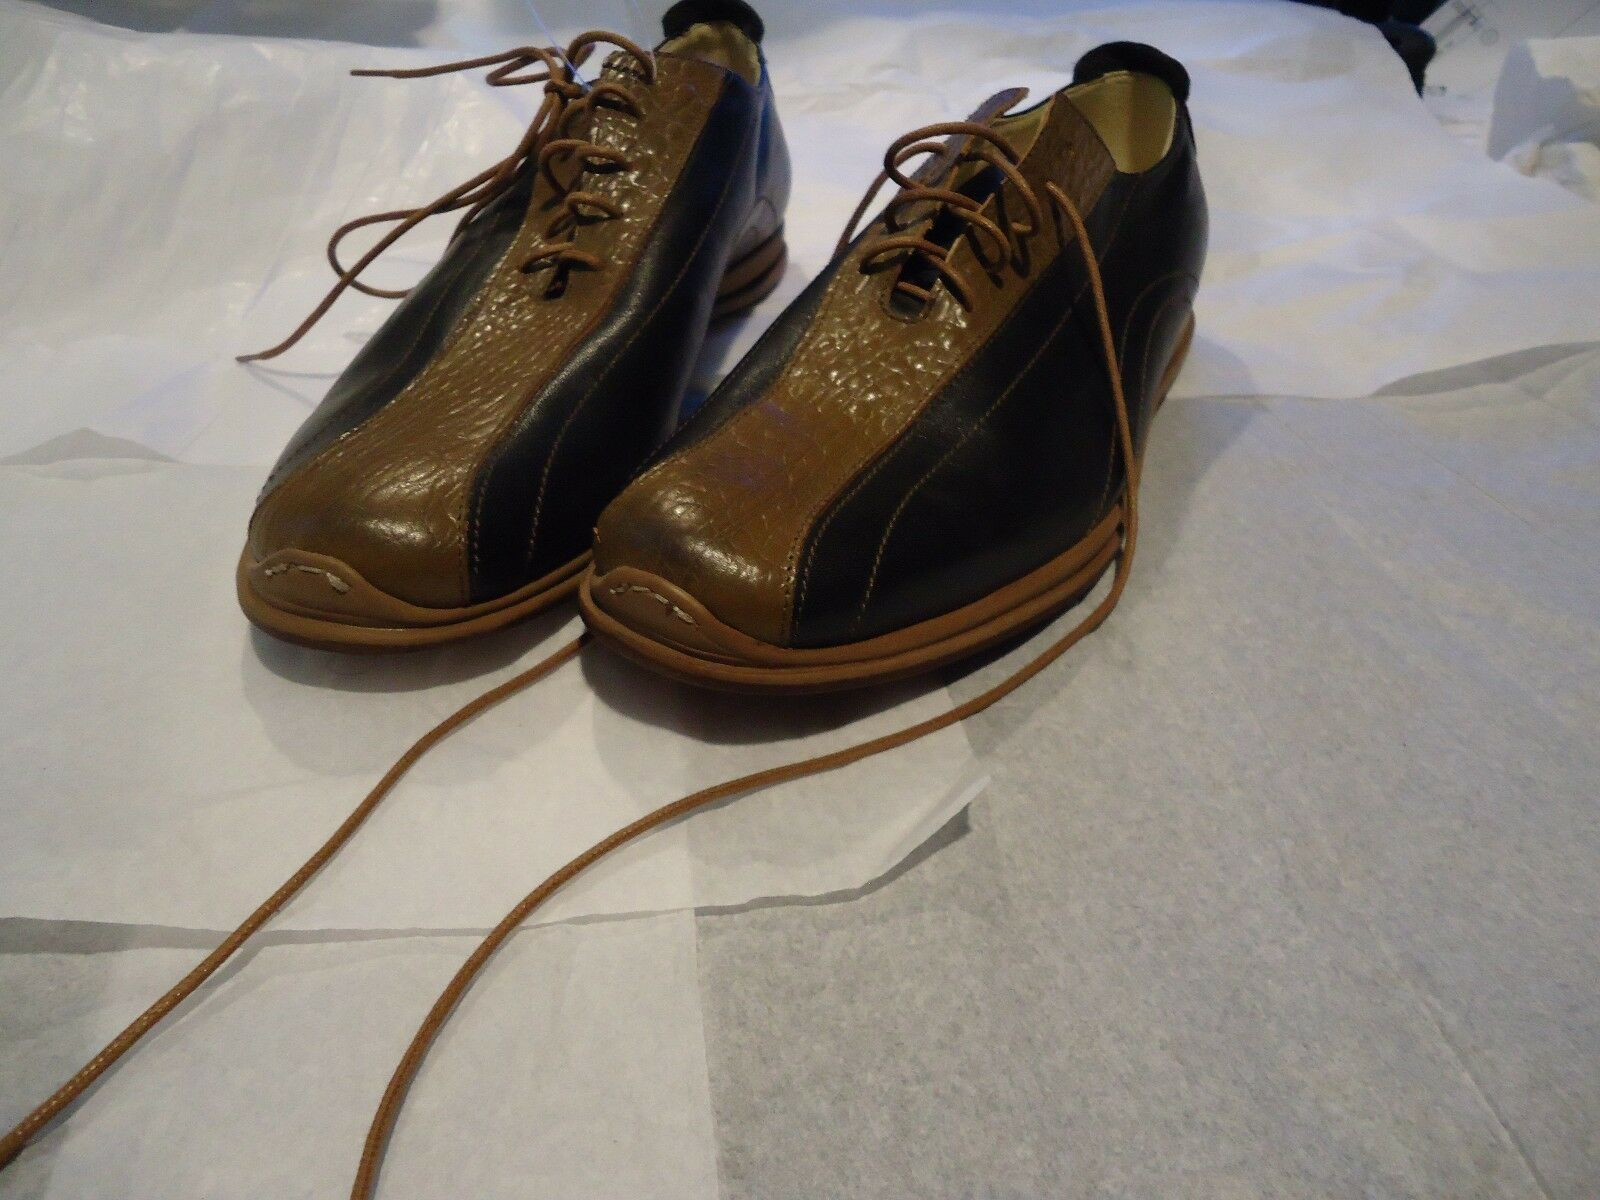 DESIGNER  MESSORI  ITALY LEATHER SHOES,  SIZE EU-42, US-9 1 2 -10.STUNNING